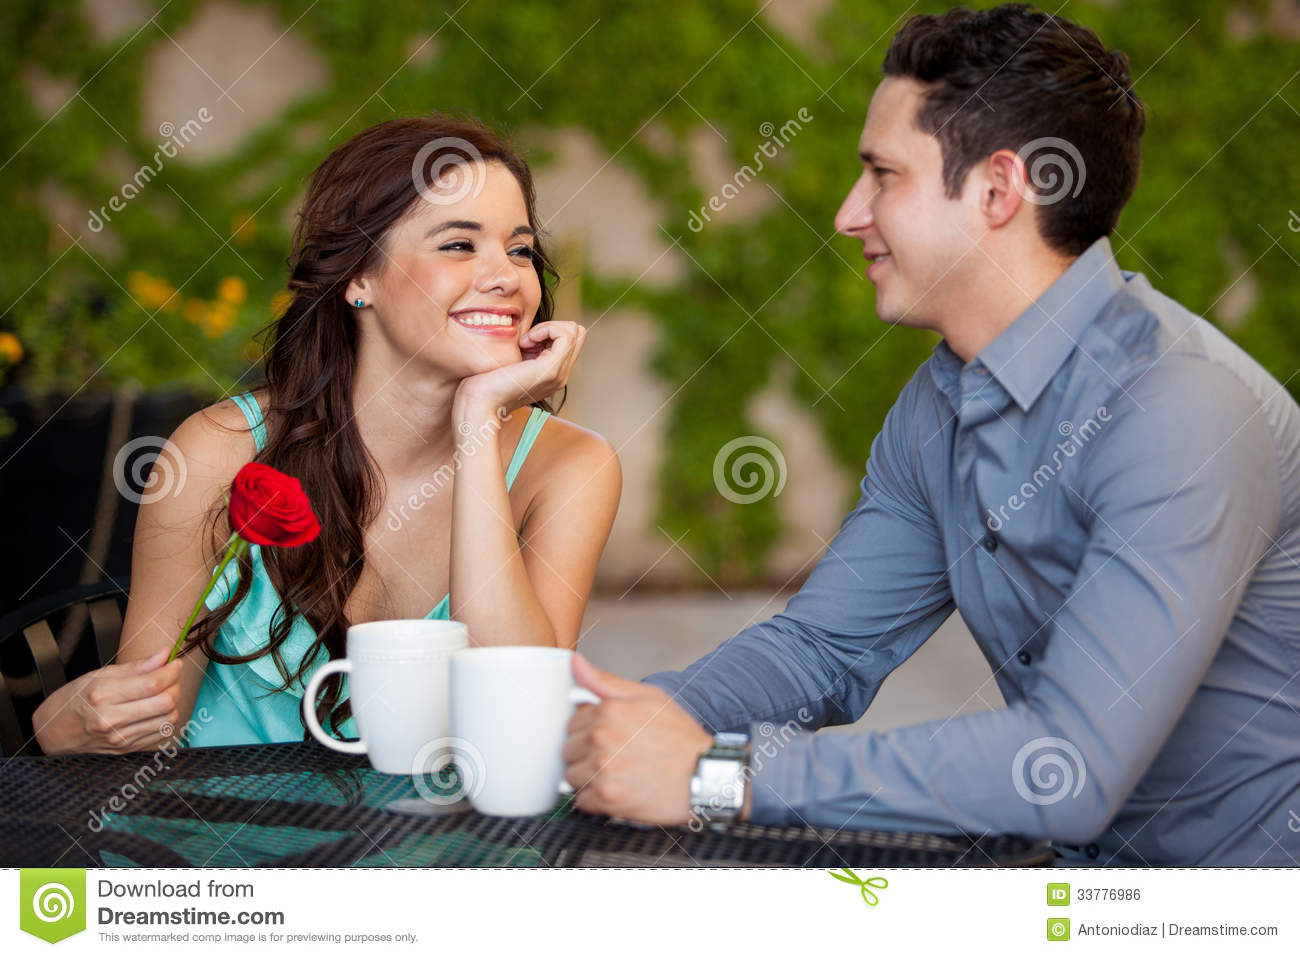 Dating girl who just got out of relationship